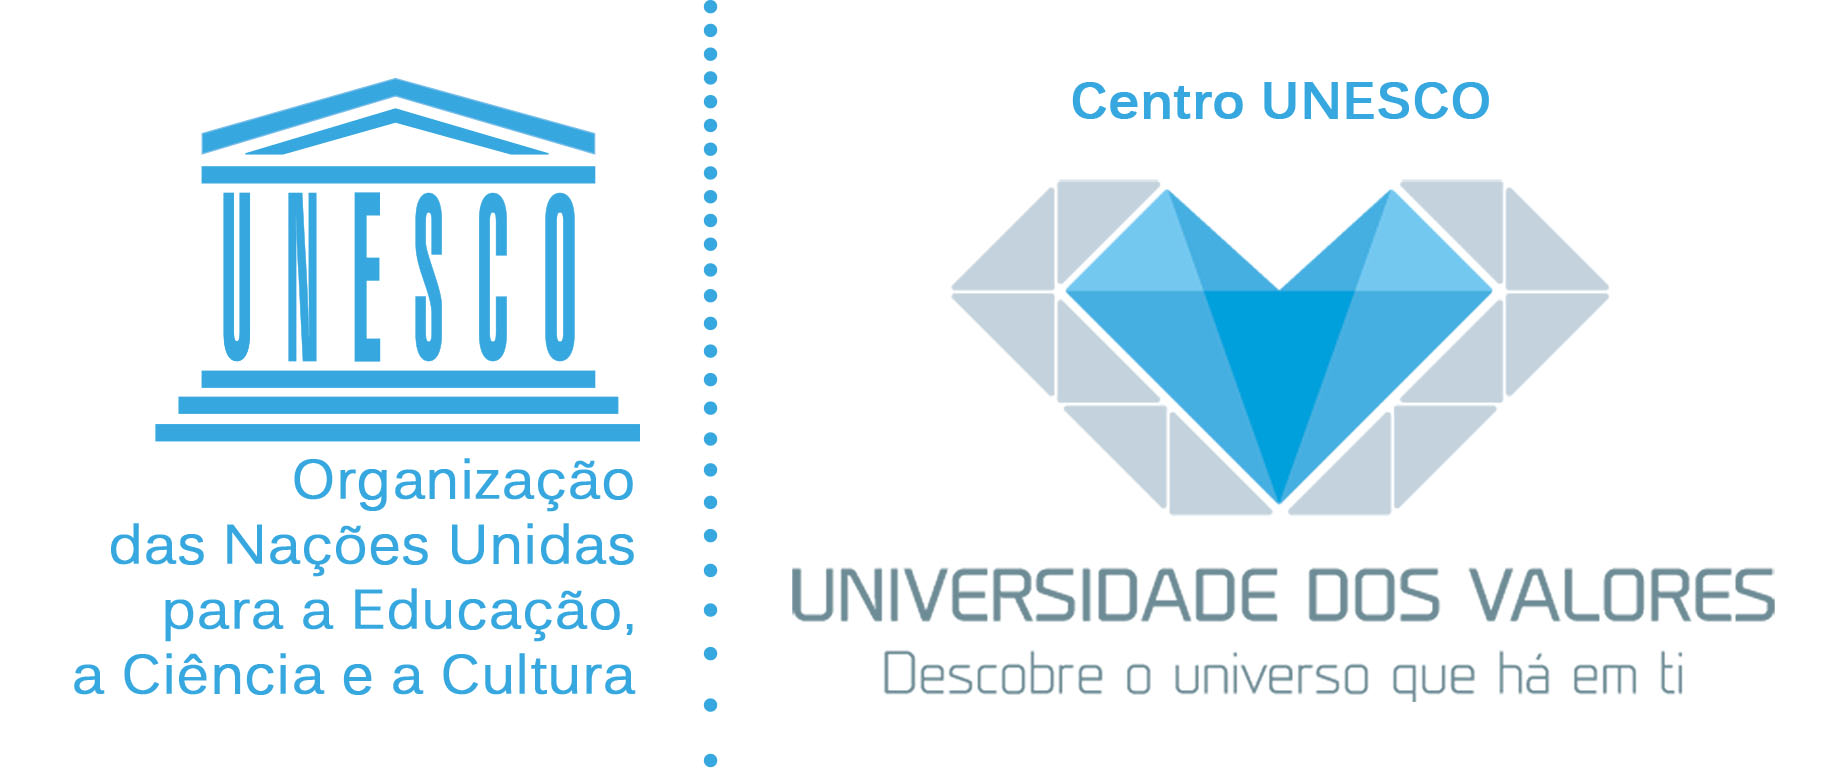 centro unesco universidade valores